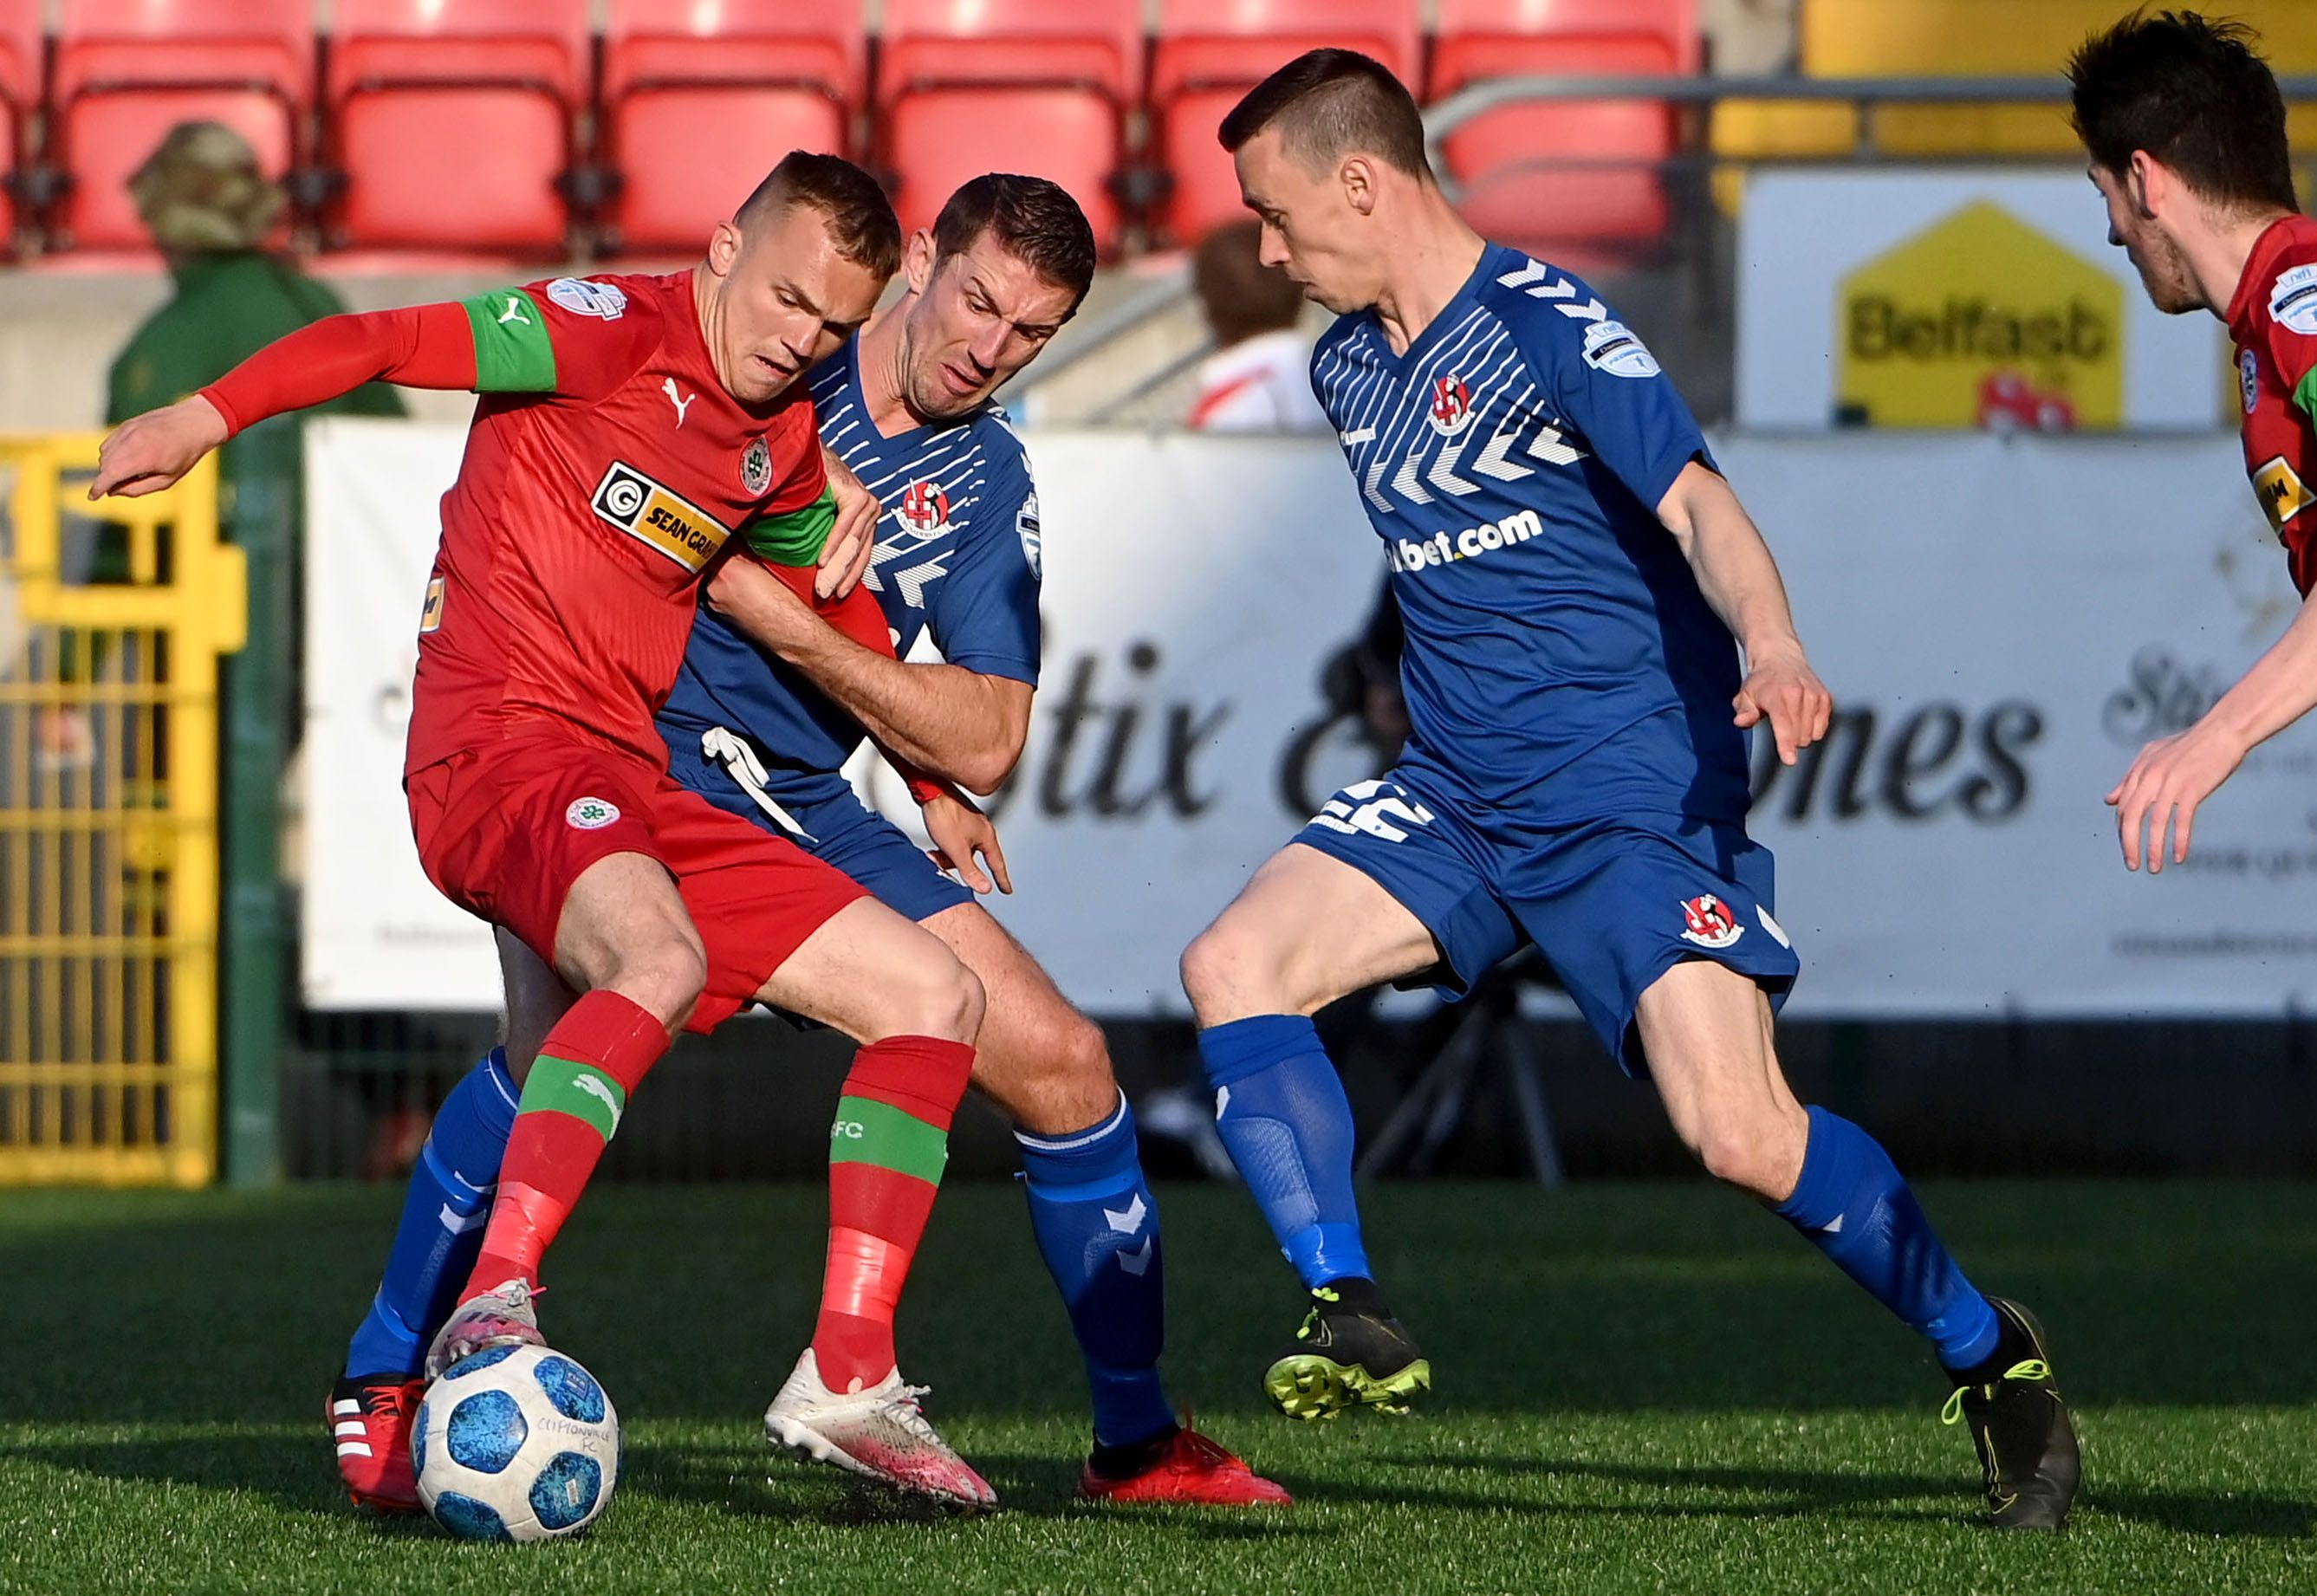 Cliftonville manager Paddy McLaughlin acknowledged that Tuesday's shootout win over Crusaders will have physically drained his players